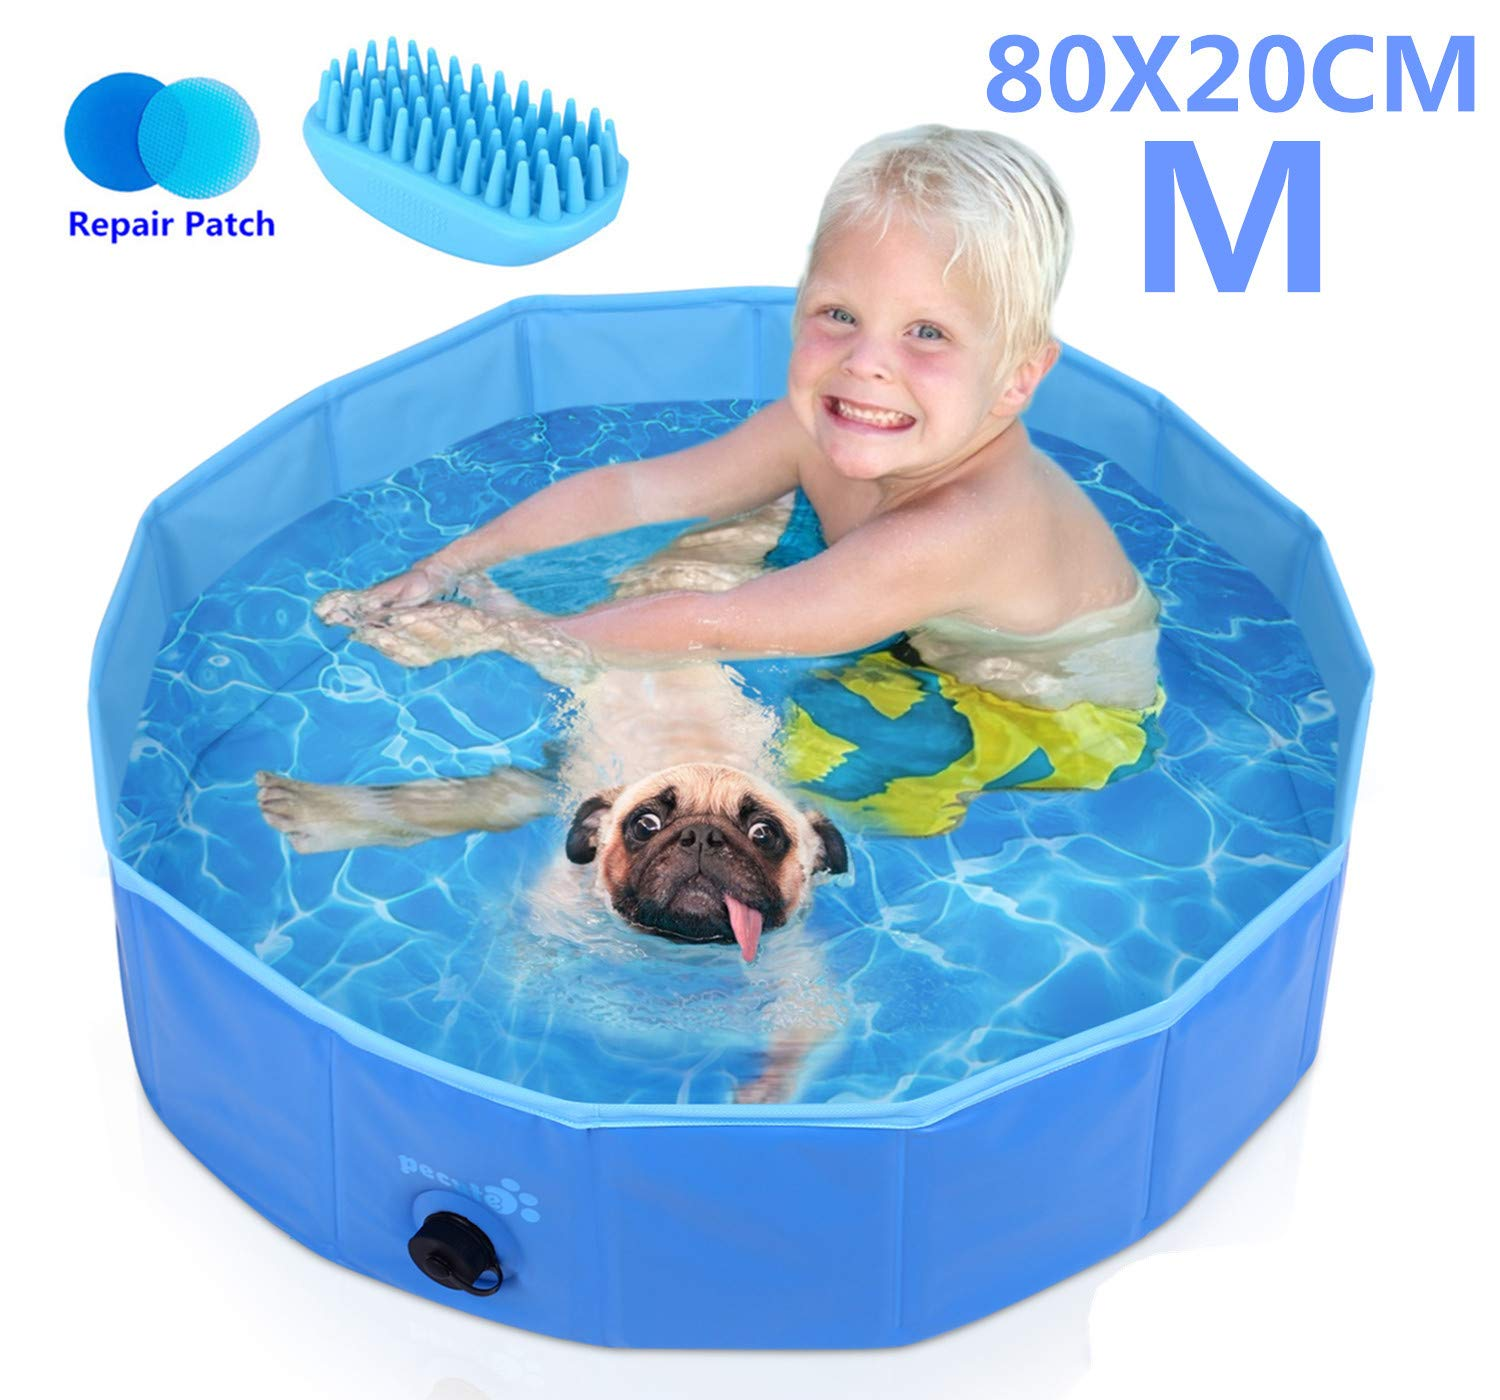 Pecute Dog Pool PVC Outdoor Pool Bathing Tub Portable Pet Playing Pool for Dogs Cats and Kids -(M,Φ32 × H8 Inches) by Pecute